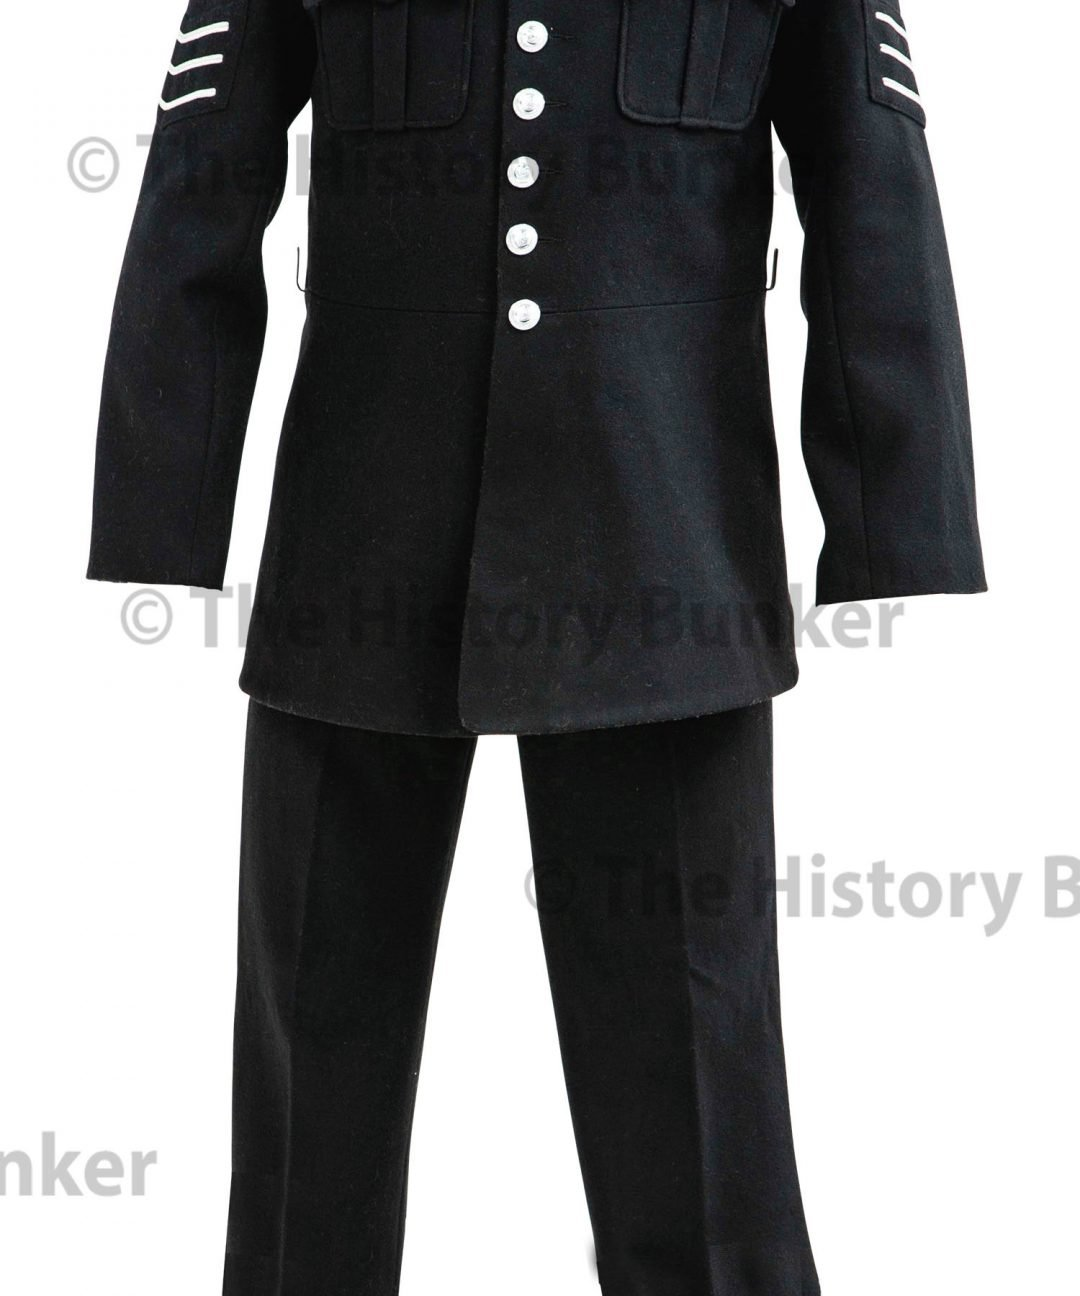 British Edwardian police uniform circa 1918